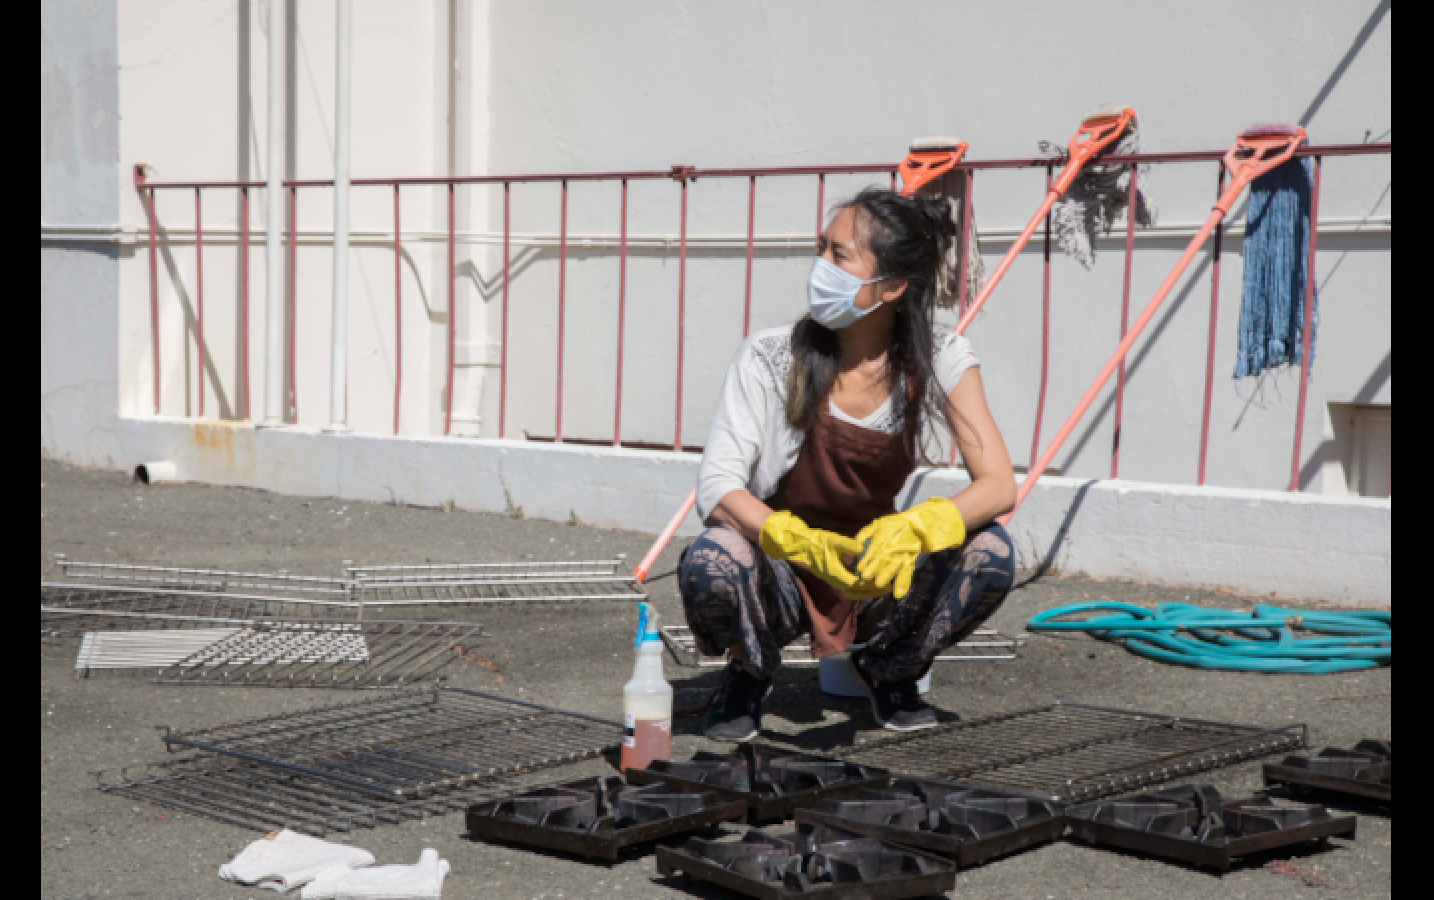 Brenda Li looks contemplatively into the distance, surrounded by kitchenware that she is in the midst of scrubbing down. In their preparations for the students' arrival, the Campus Life team underwent a deep-clean of the entire Sudhana campus.